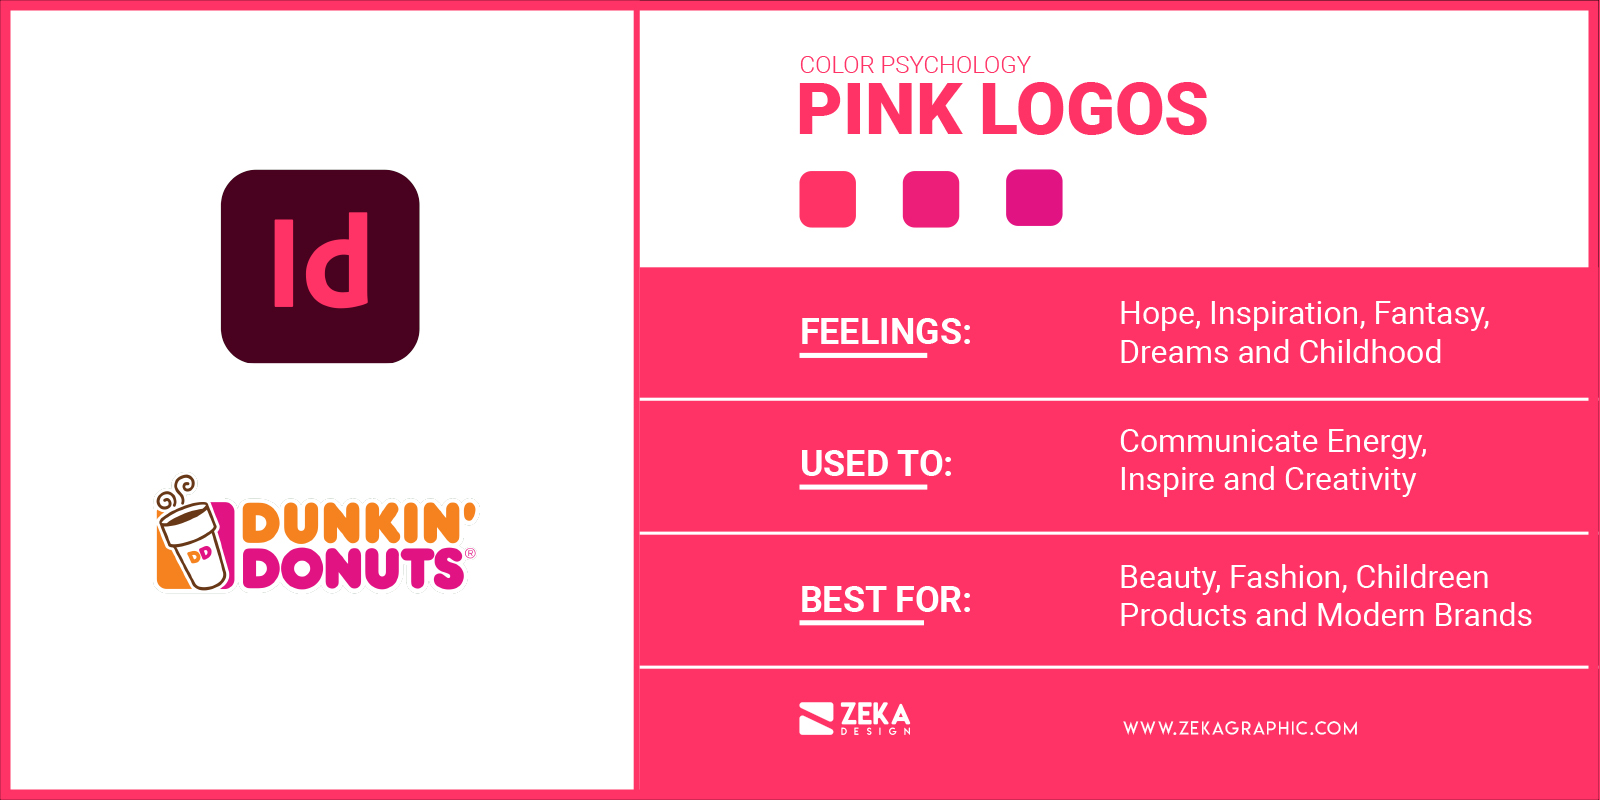 Pink Logos Meaning in Graphic Design